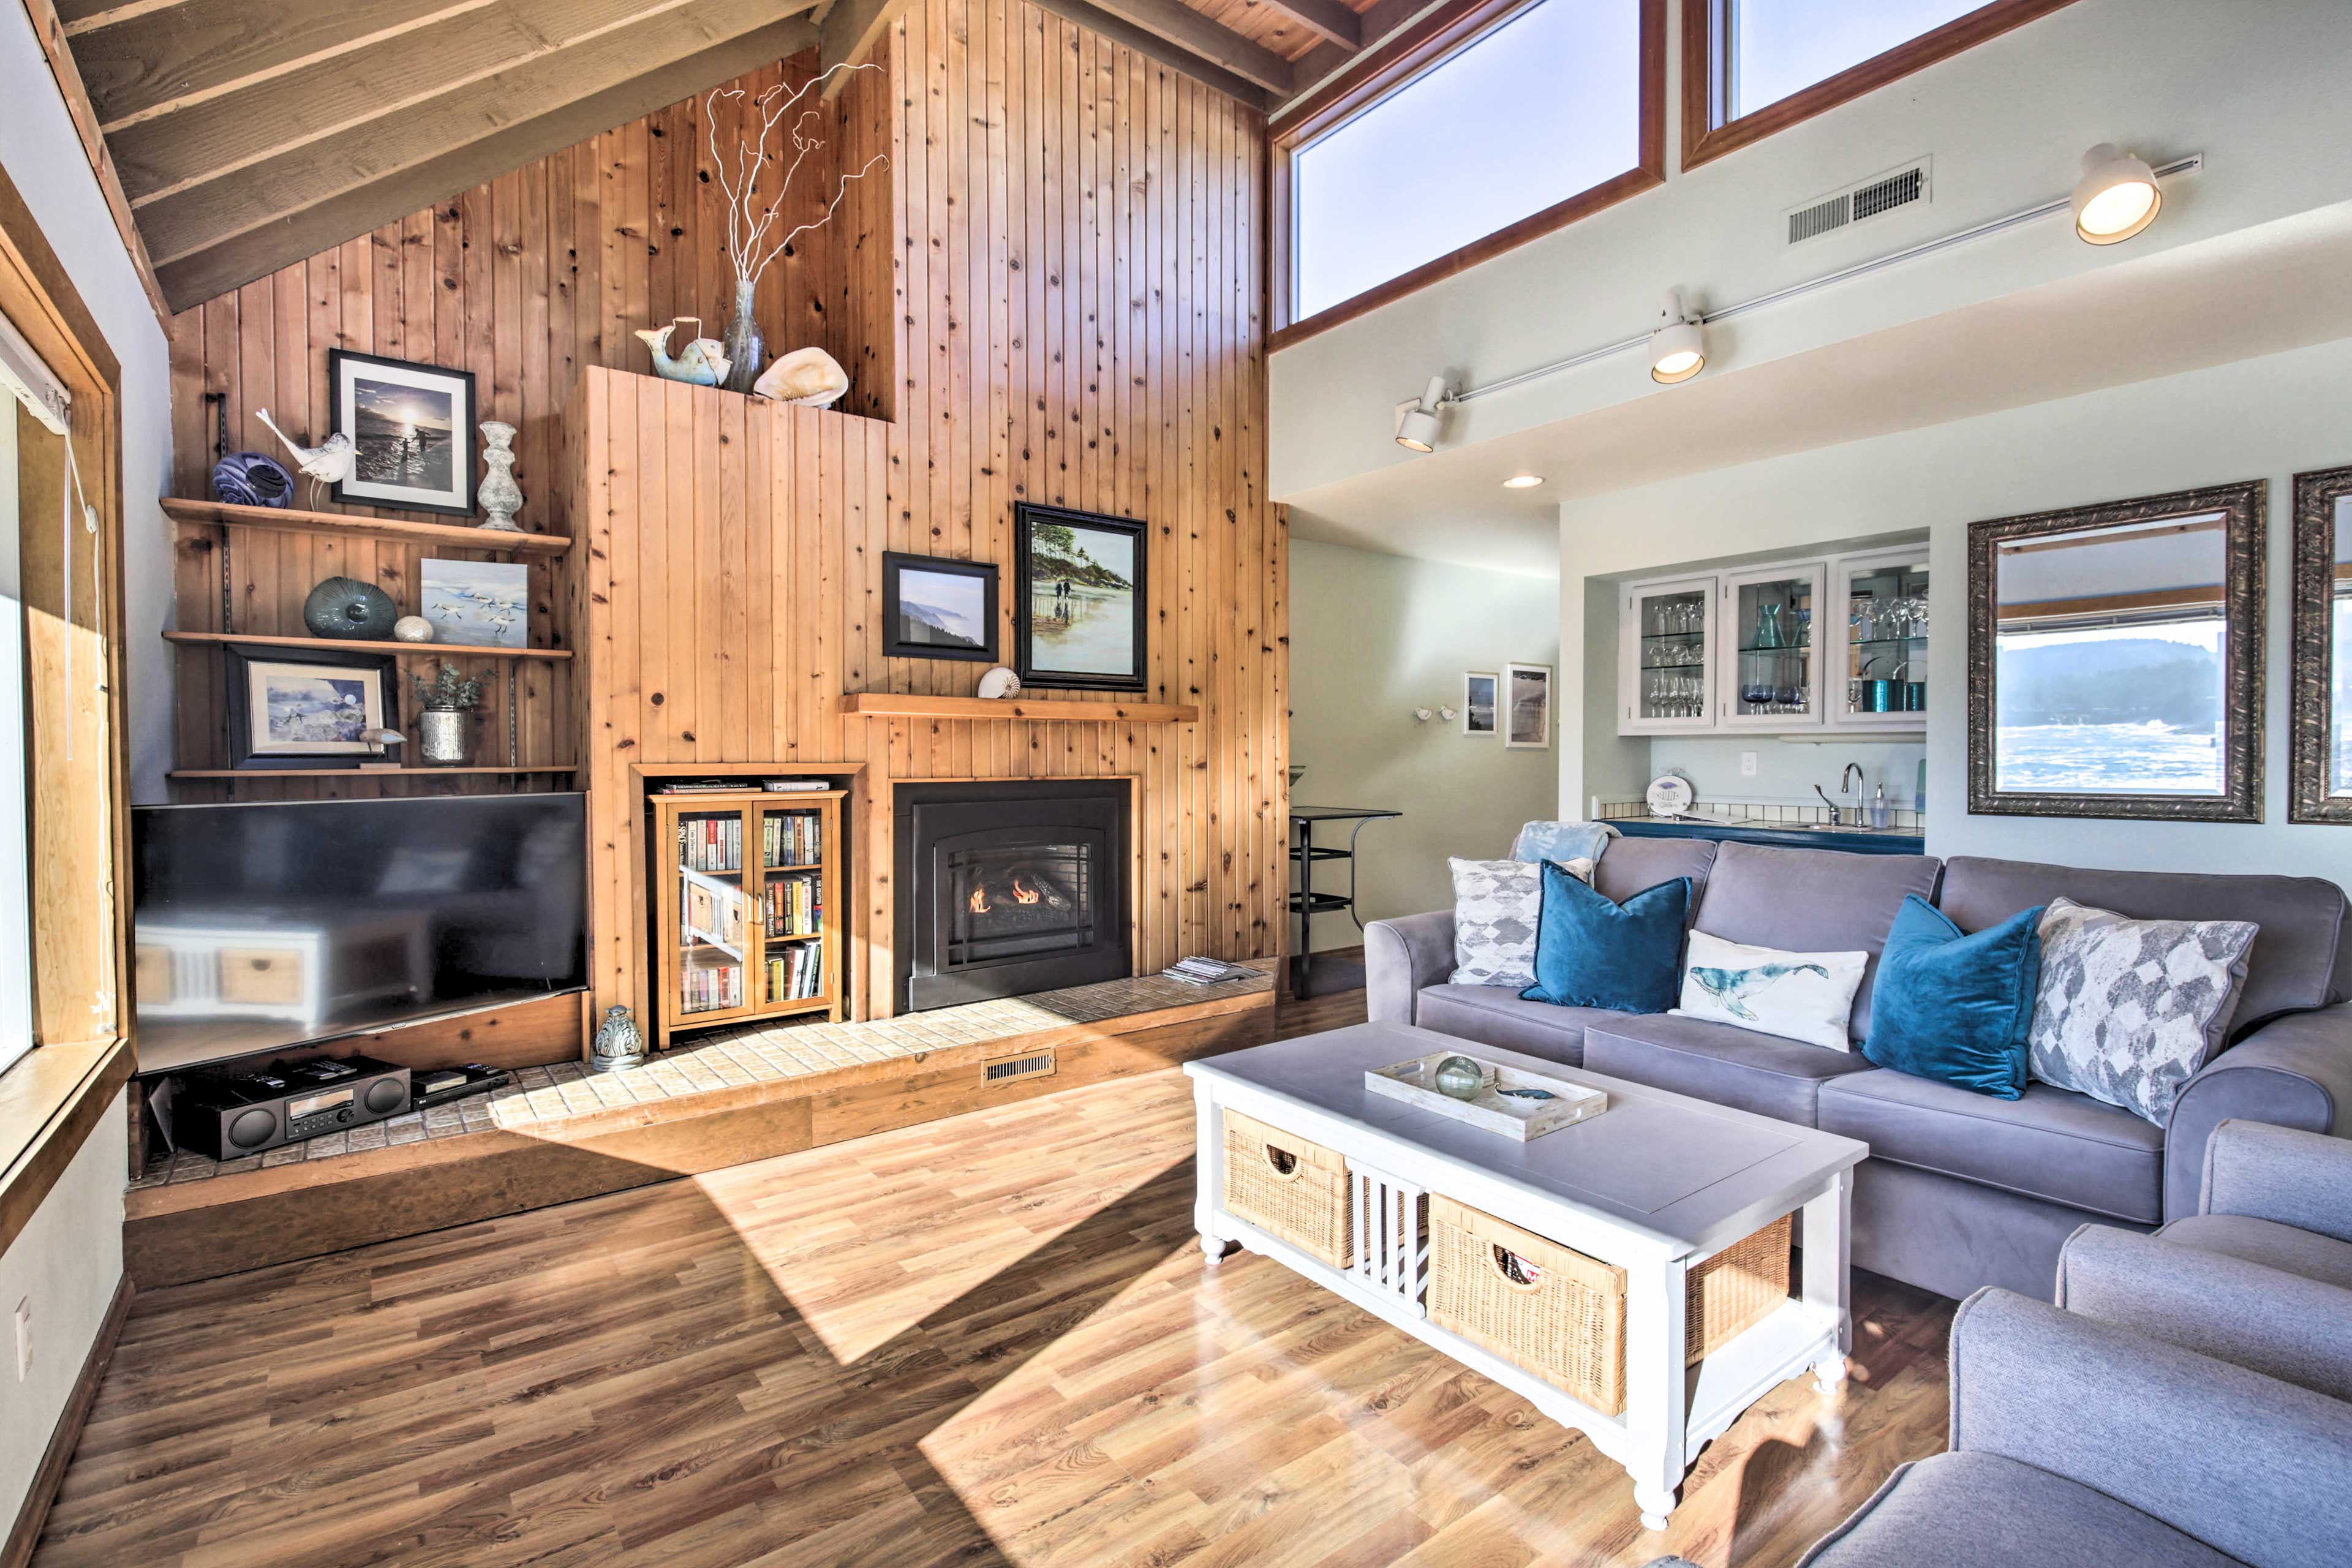 The bright living space features hardwood floors and high ceilings.